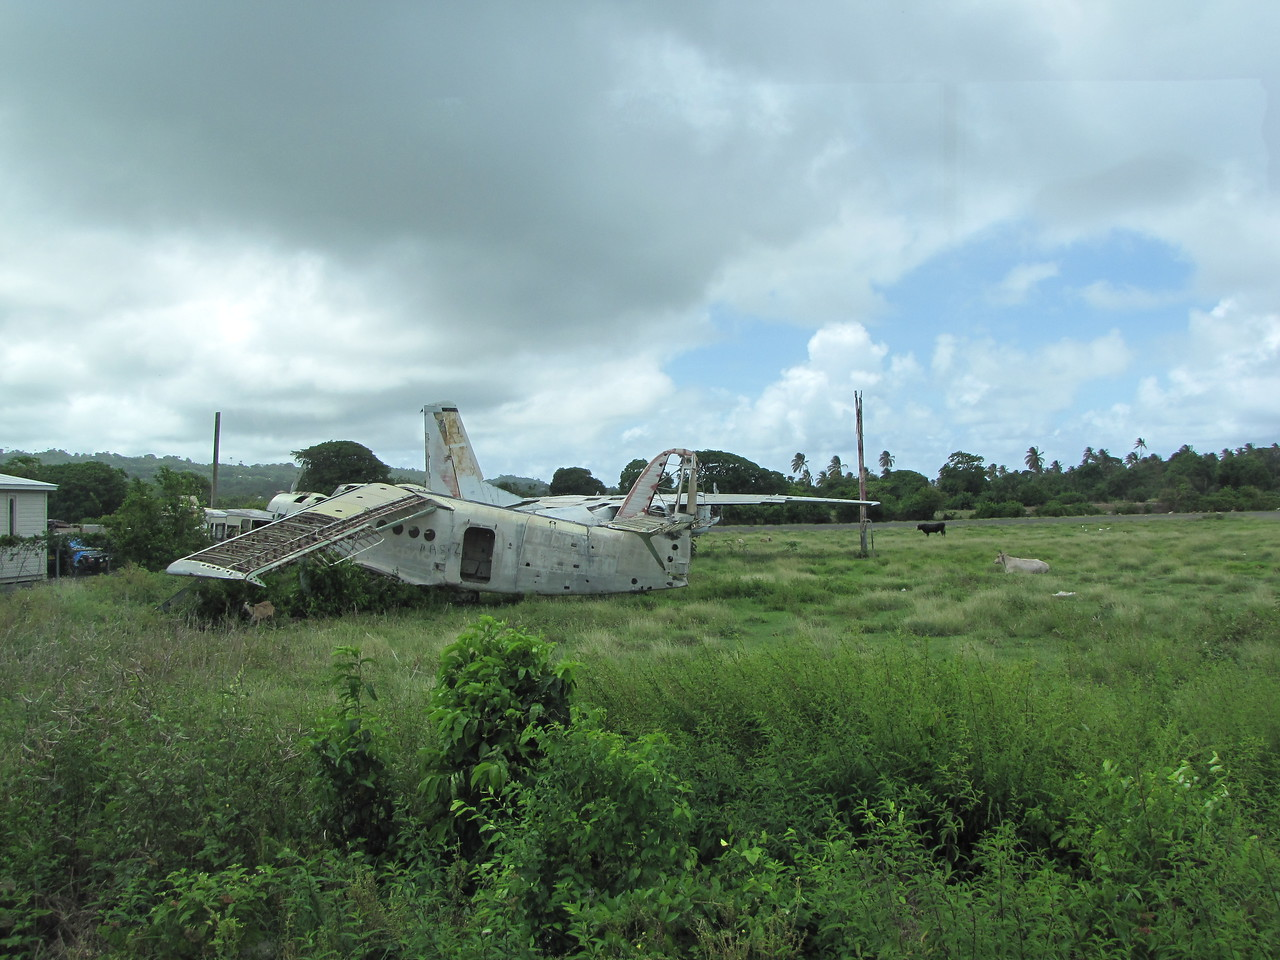 This is an abandoned Cuban aircarft at the airfield.